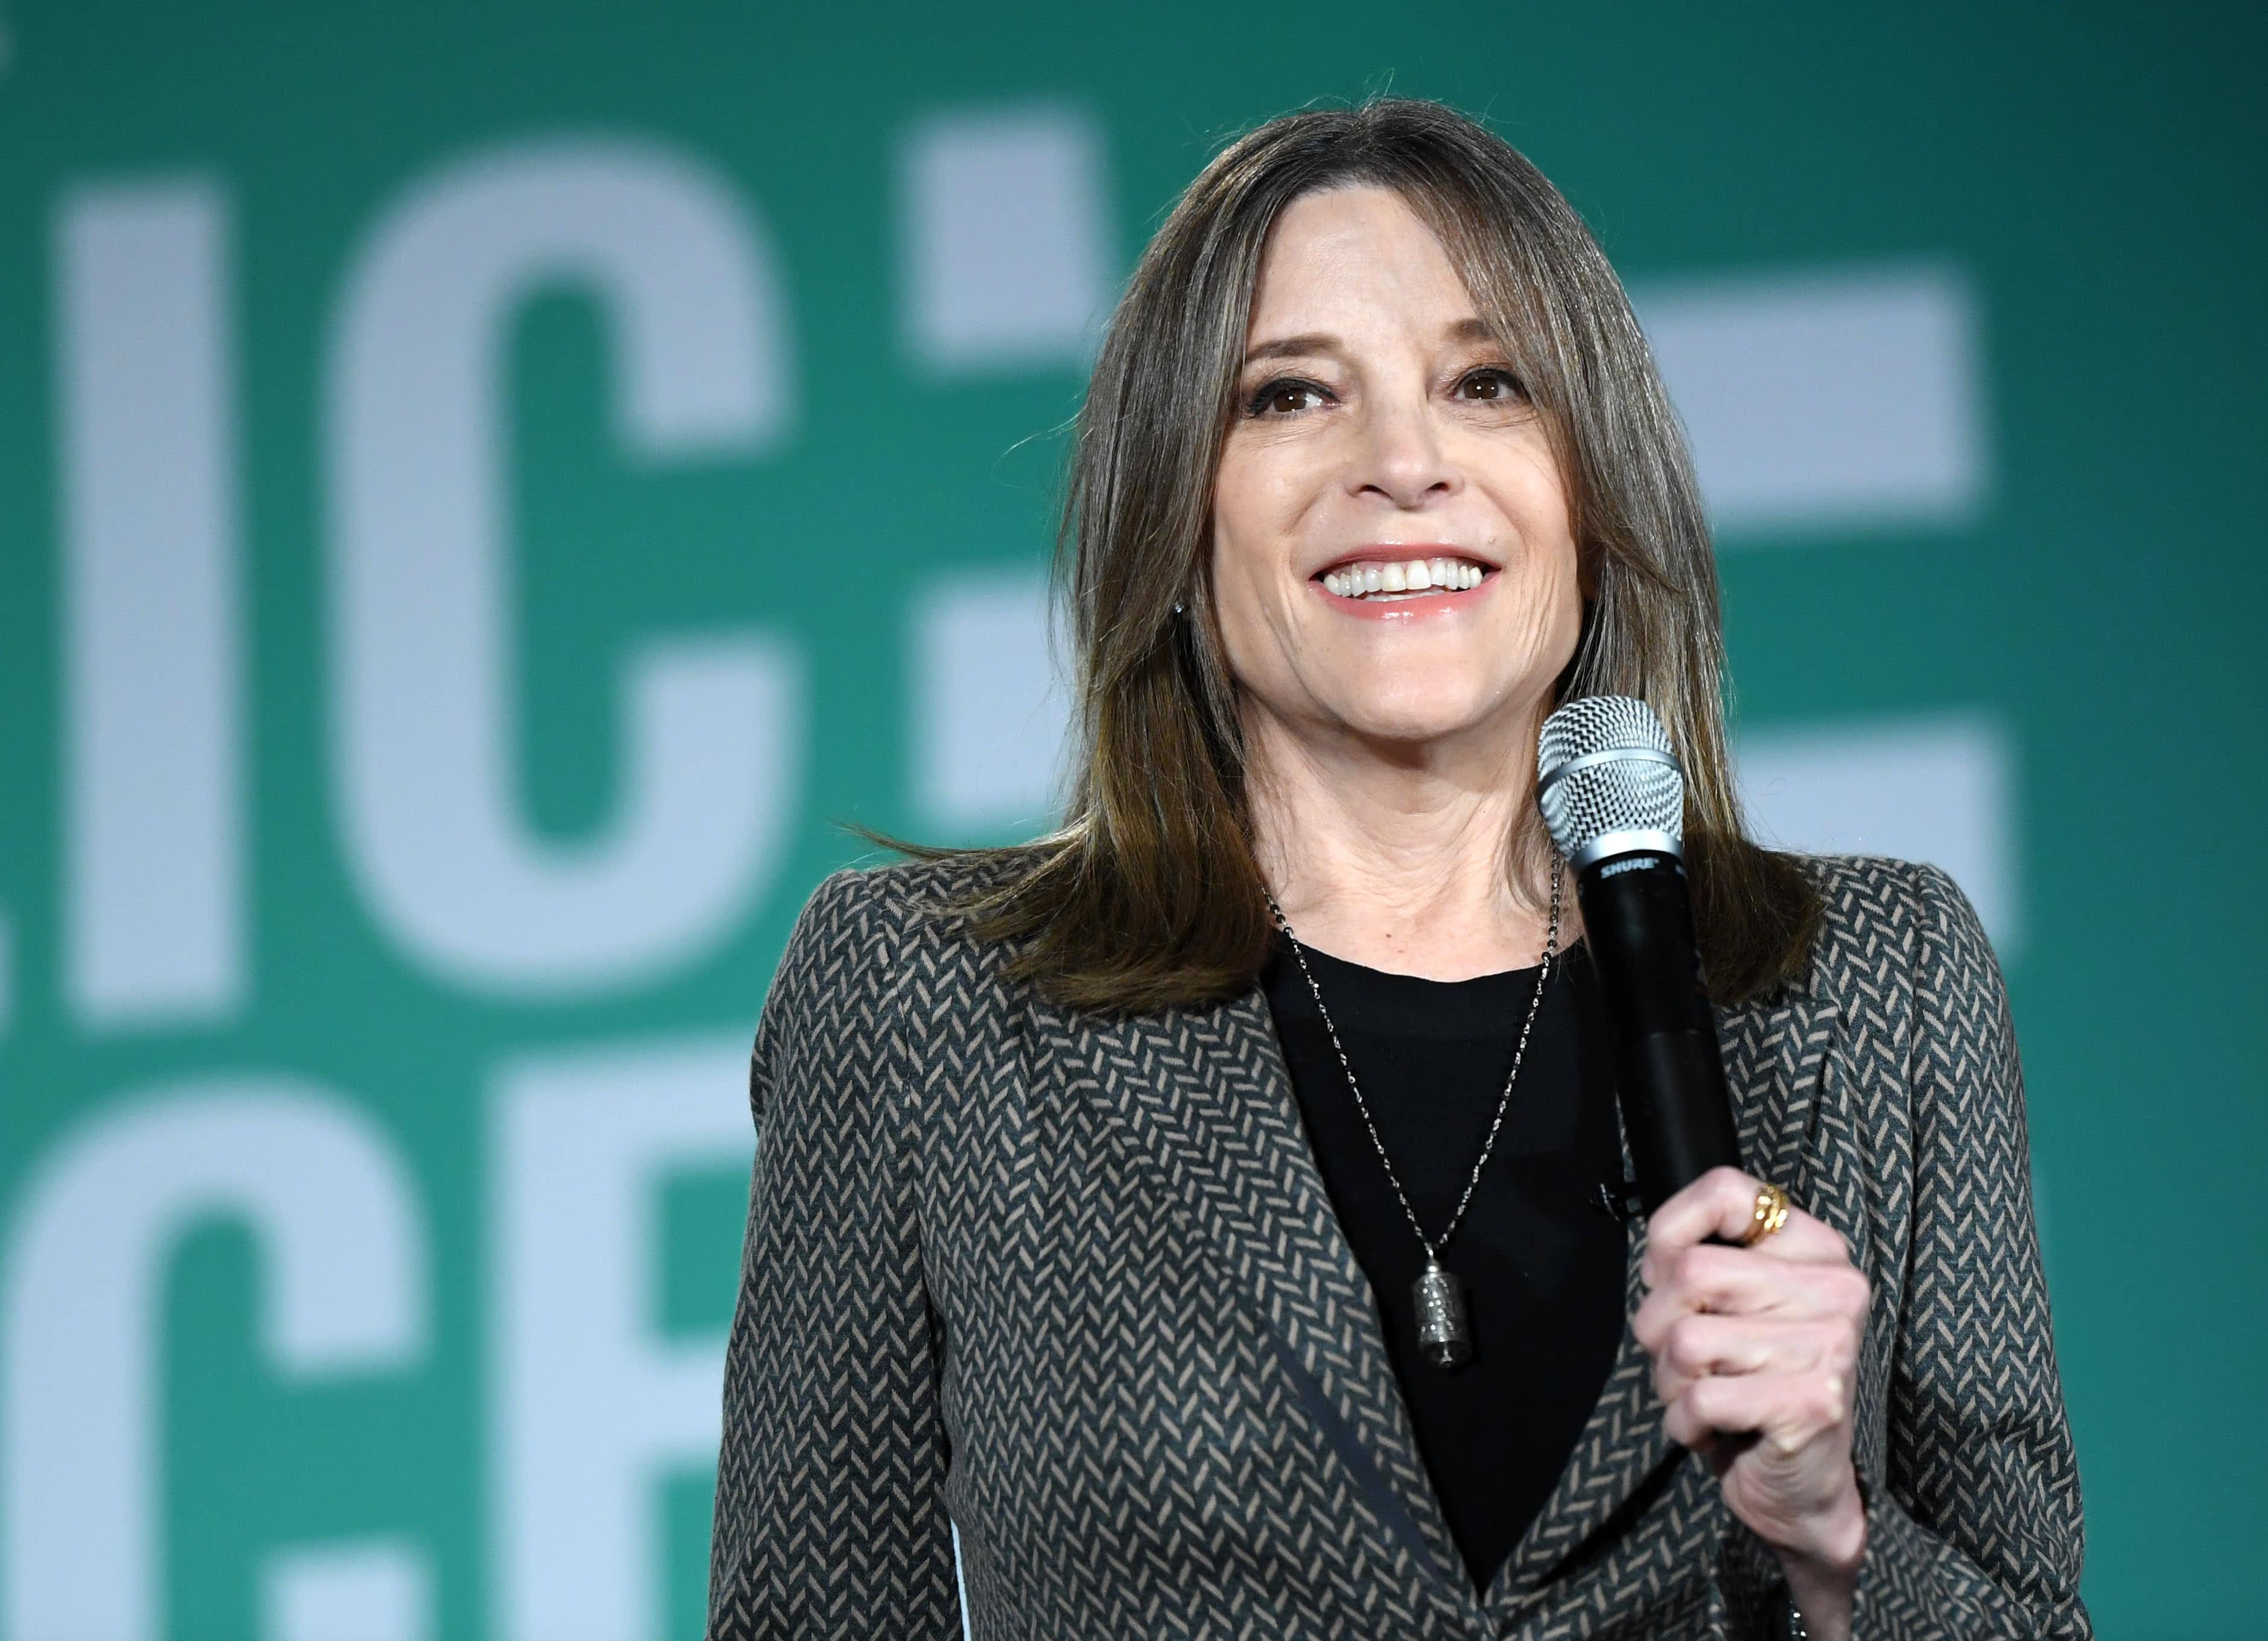 Presidential candidate Marianne Williamson, like opponent Andrew Yang, wants to give every adult $1,000 per month